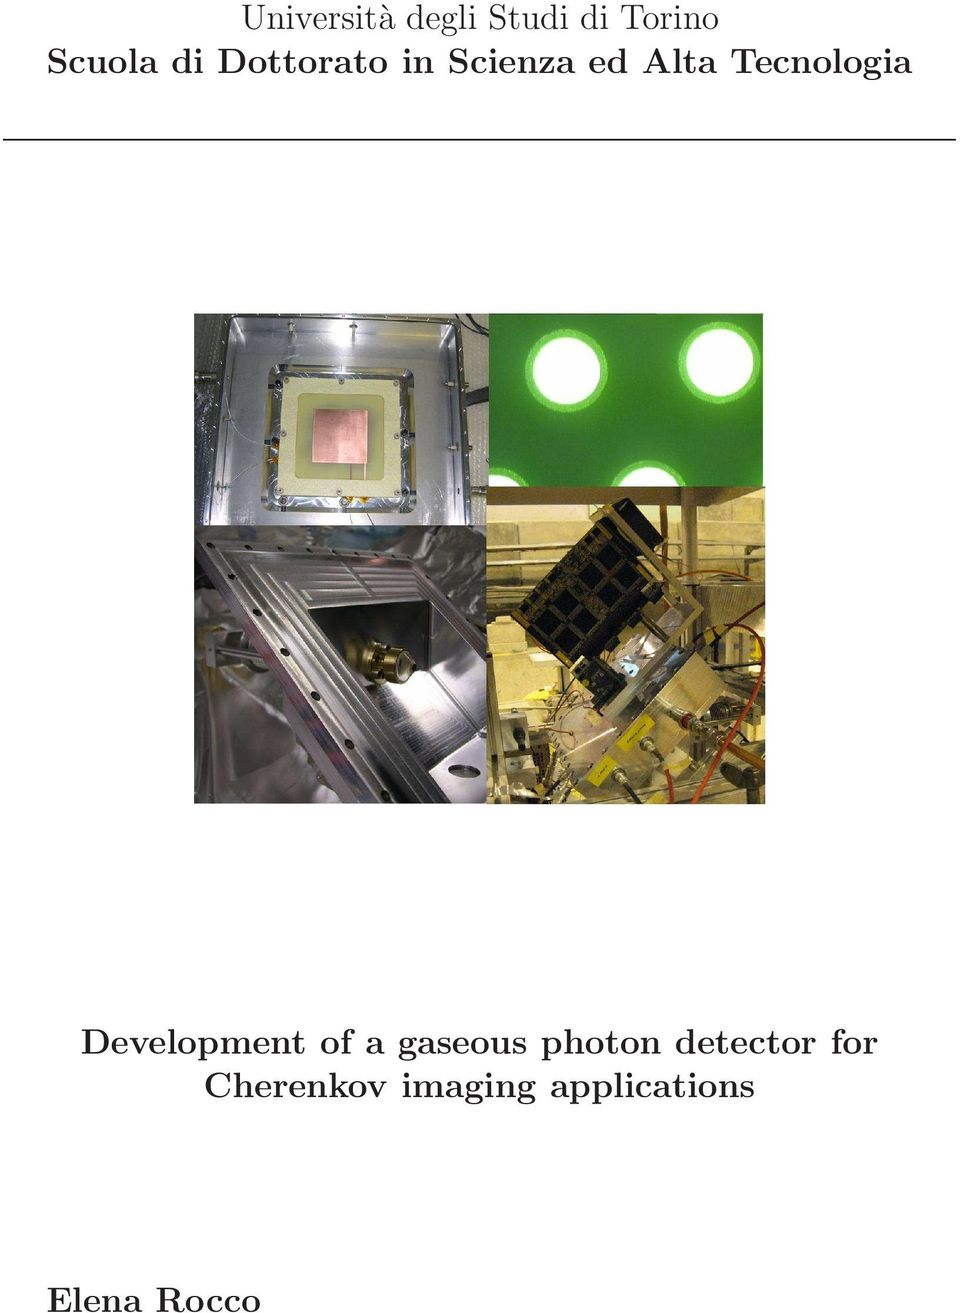 Development of a gaseous photon detector